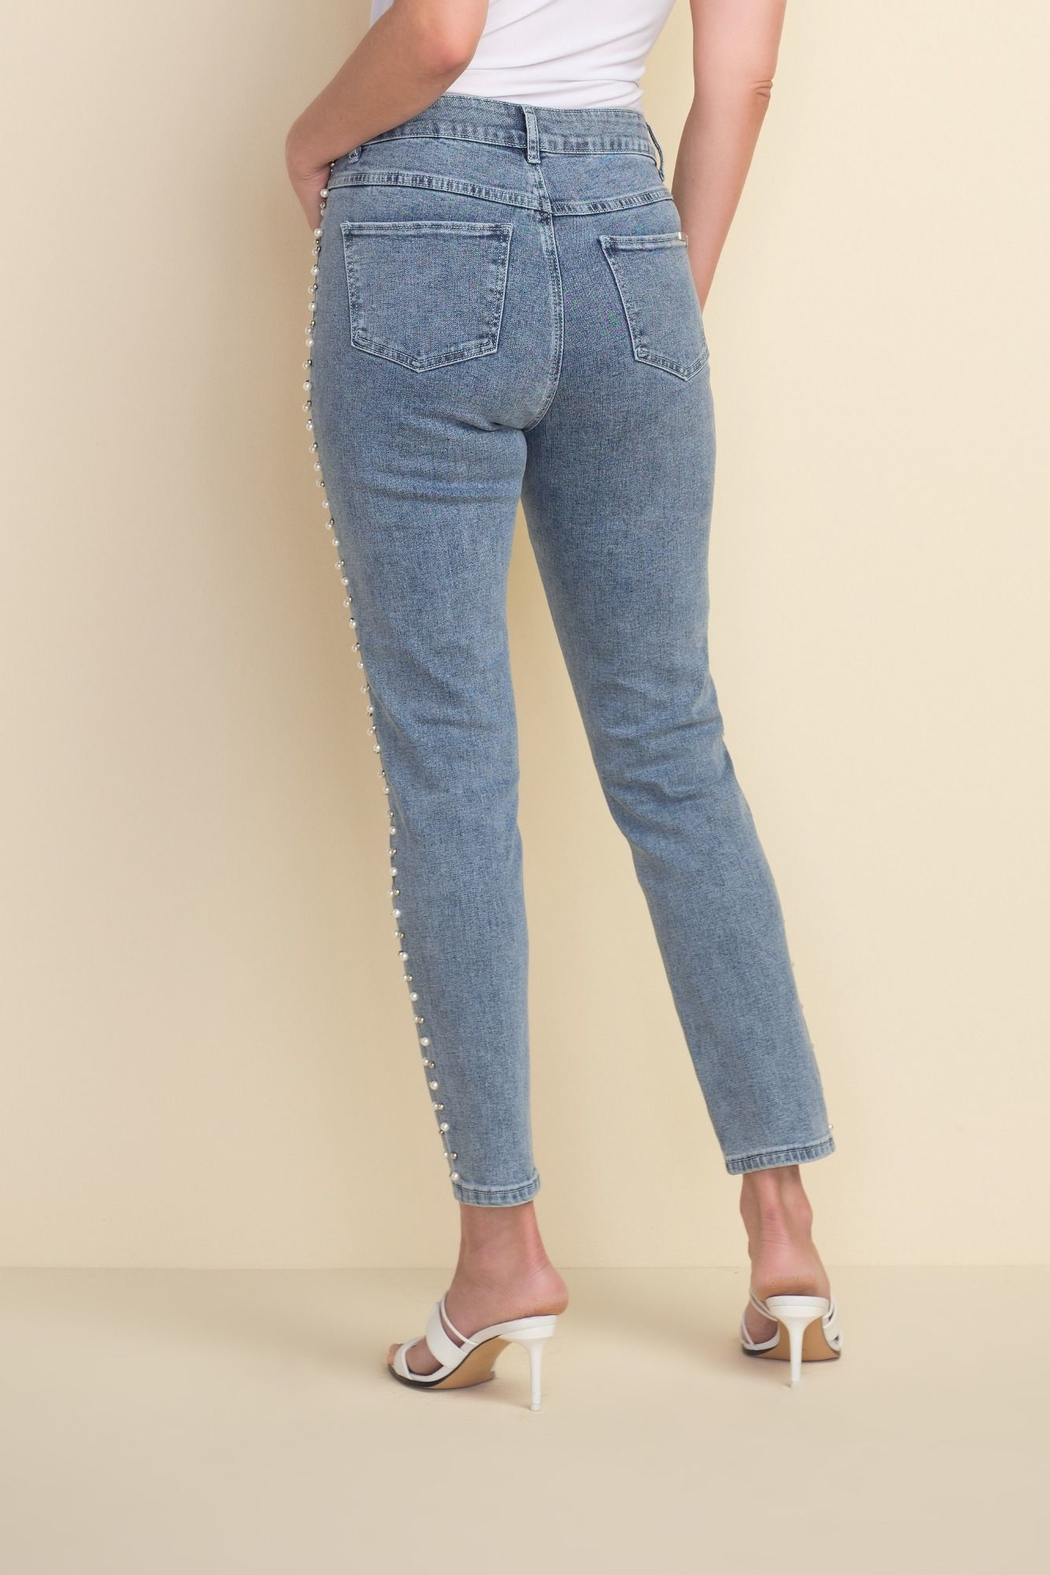 Joseph Ribkoff  Ankle length light denim jeans with beading on sides - Front Full Image